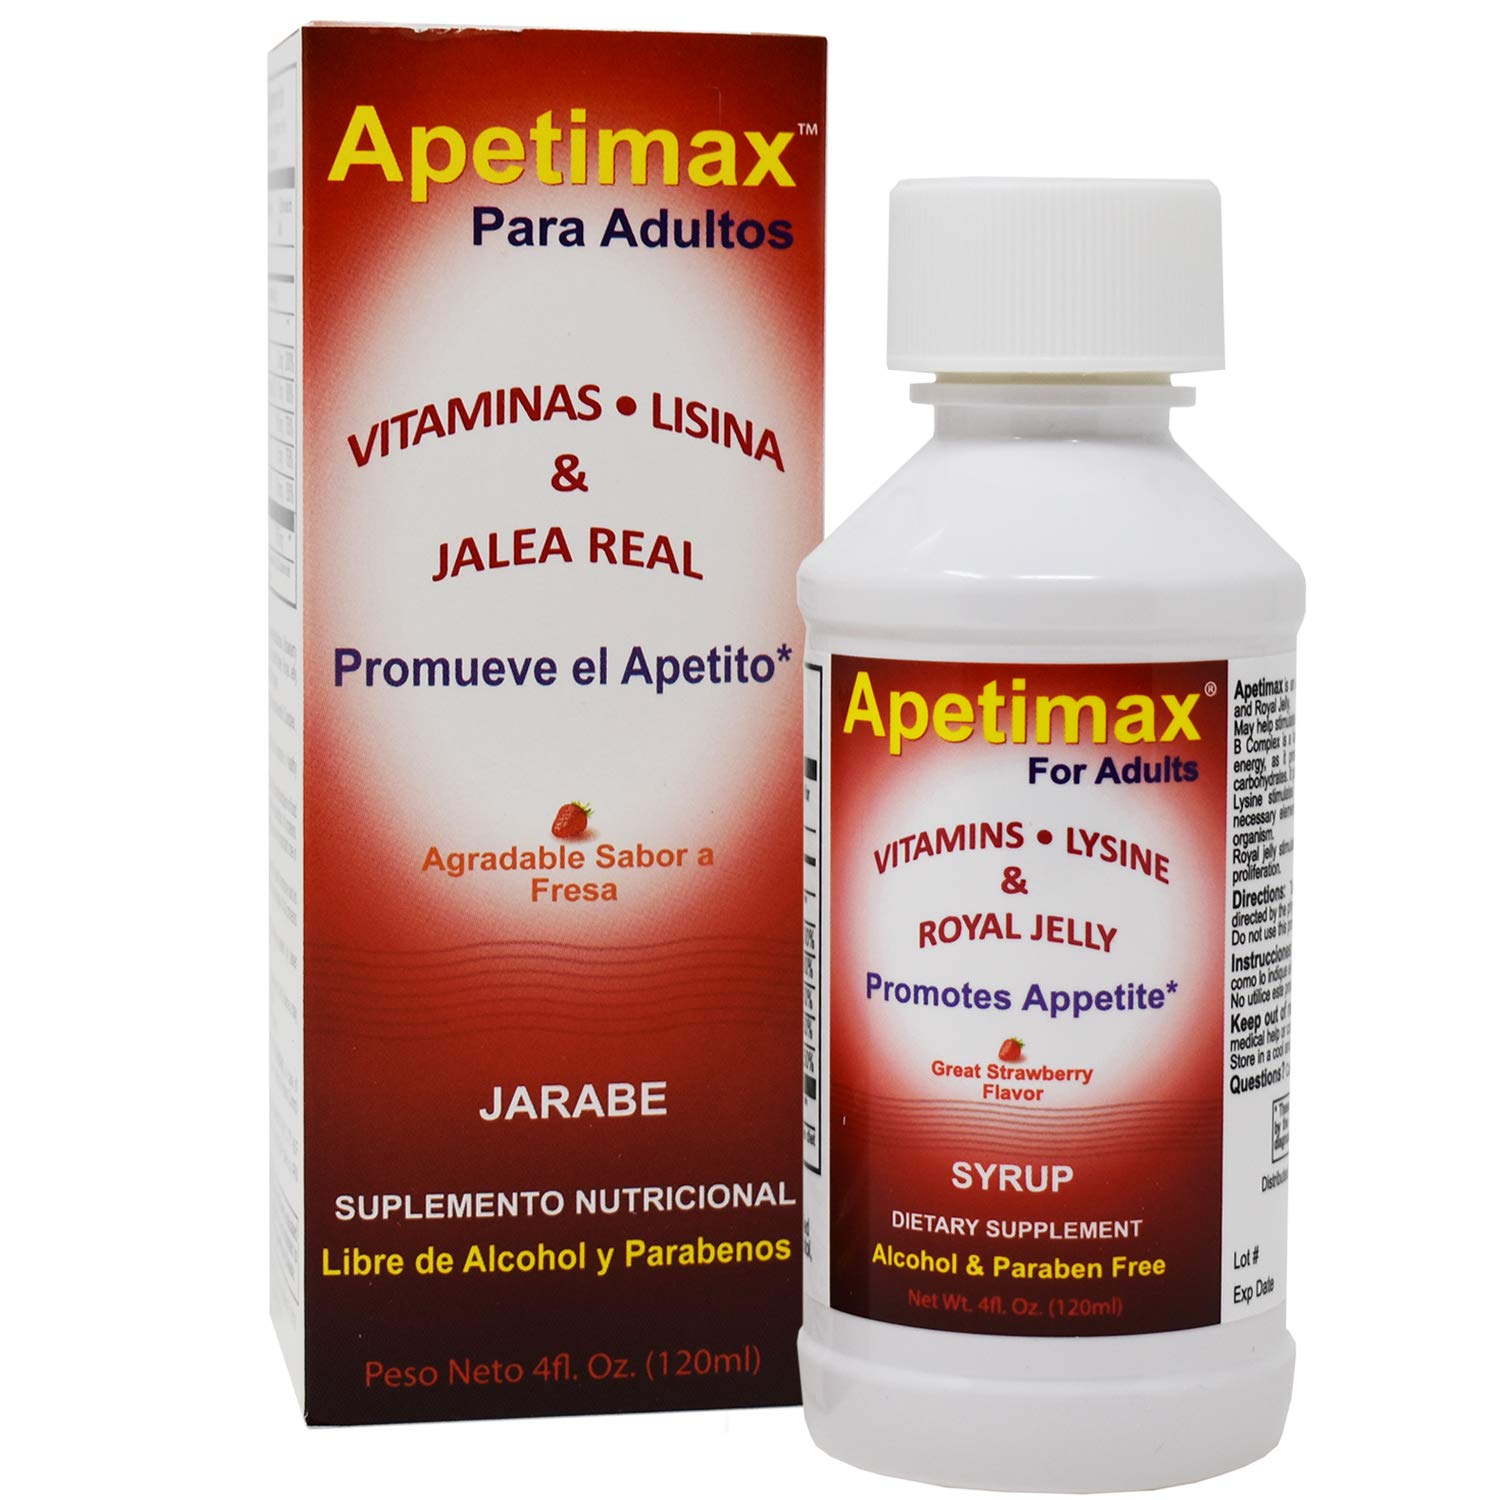 Apetimax Vitamins Lysine Royal Jelly Promotes Appetite Syrup for Adults 4 oz